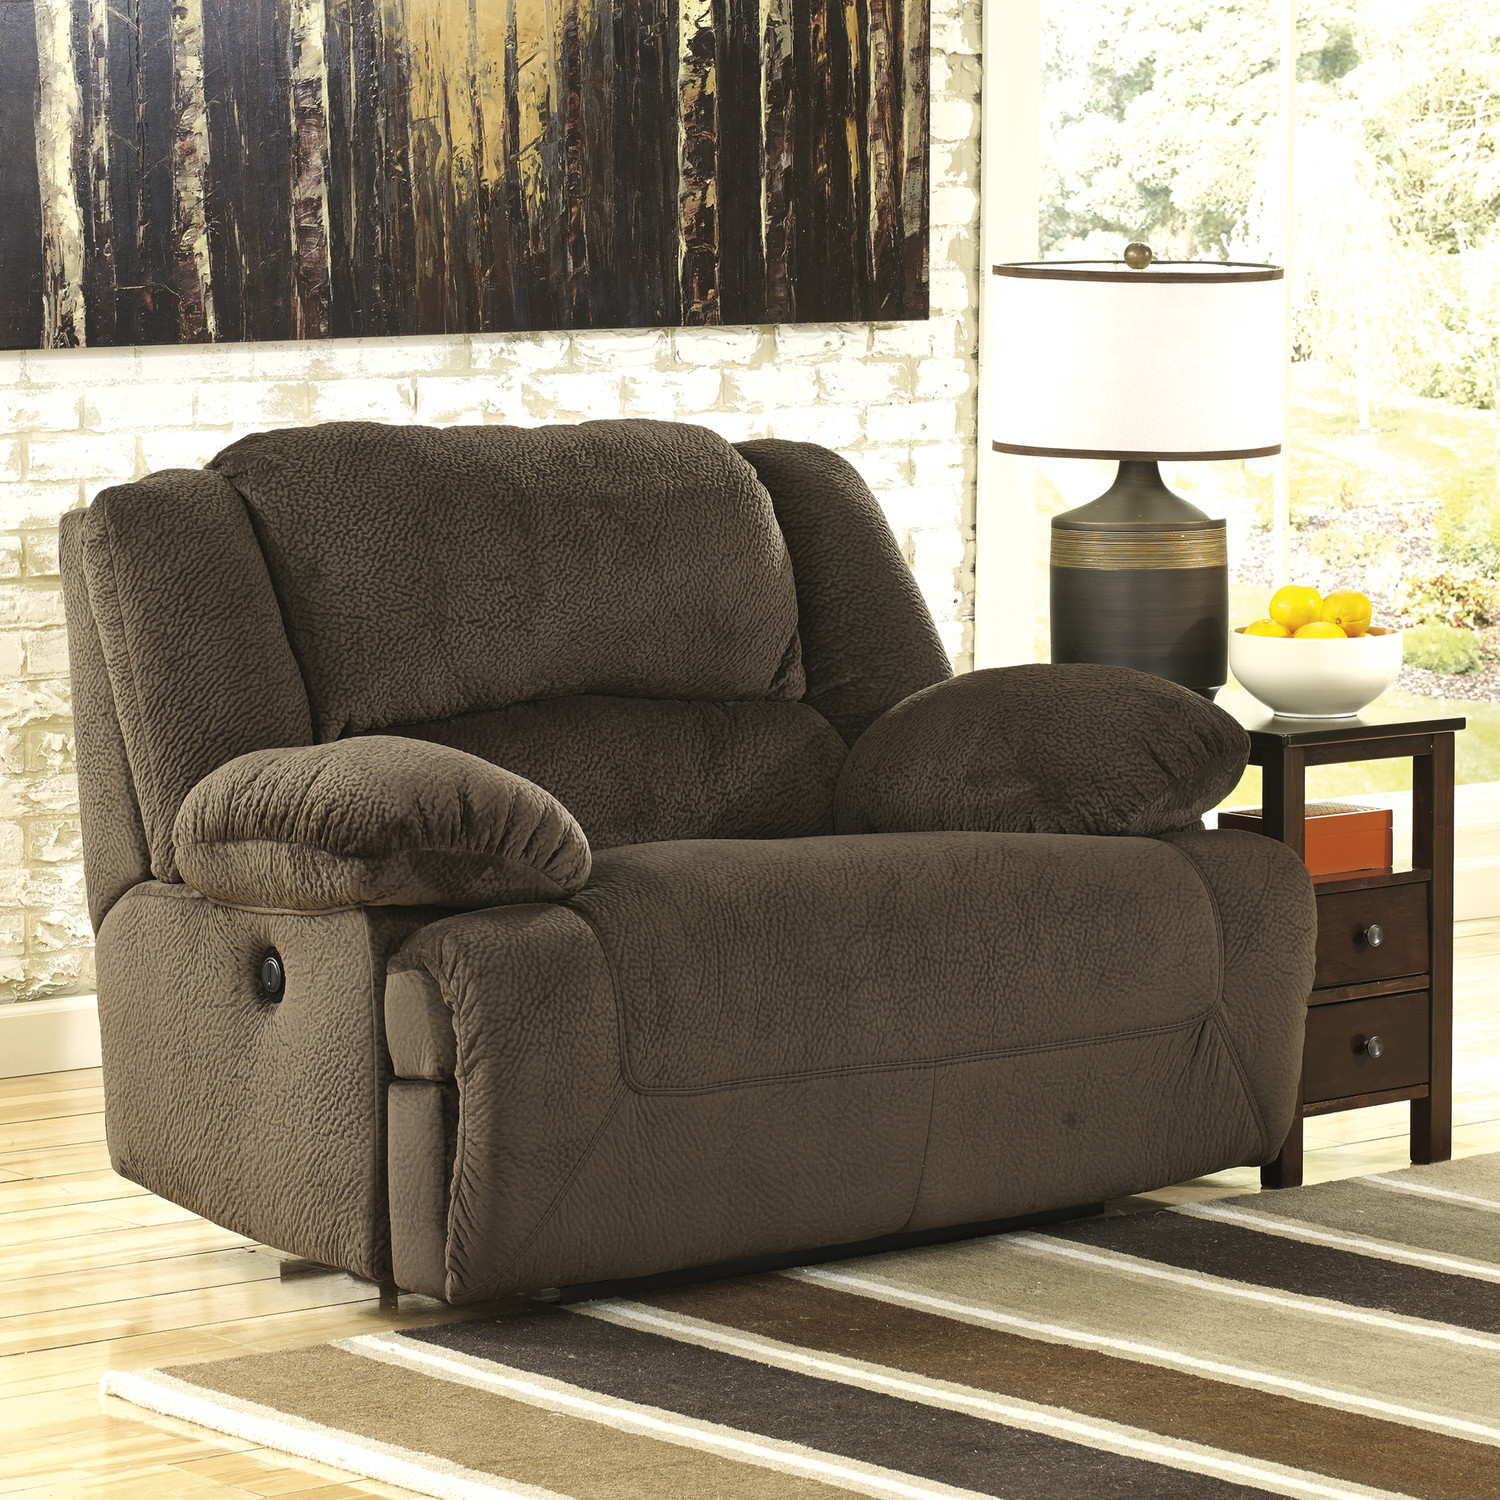 Oversized Recliner Chair Product Selections – HomesFeed